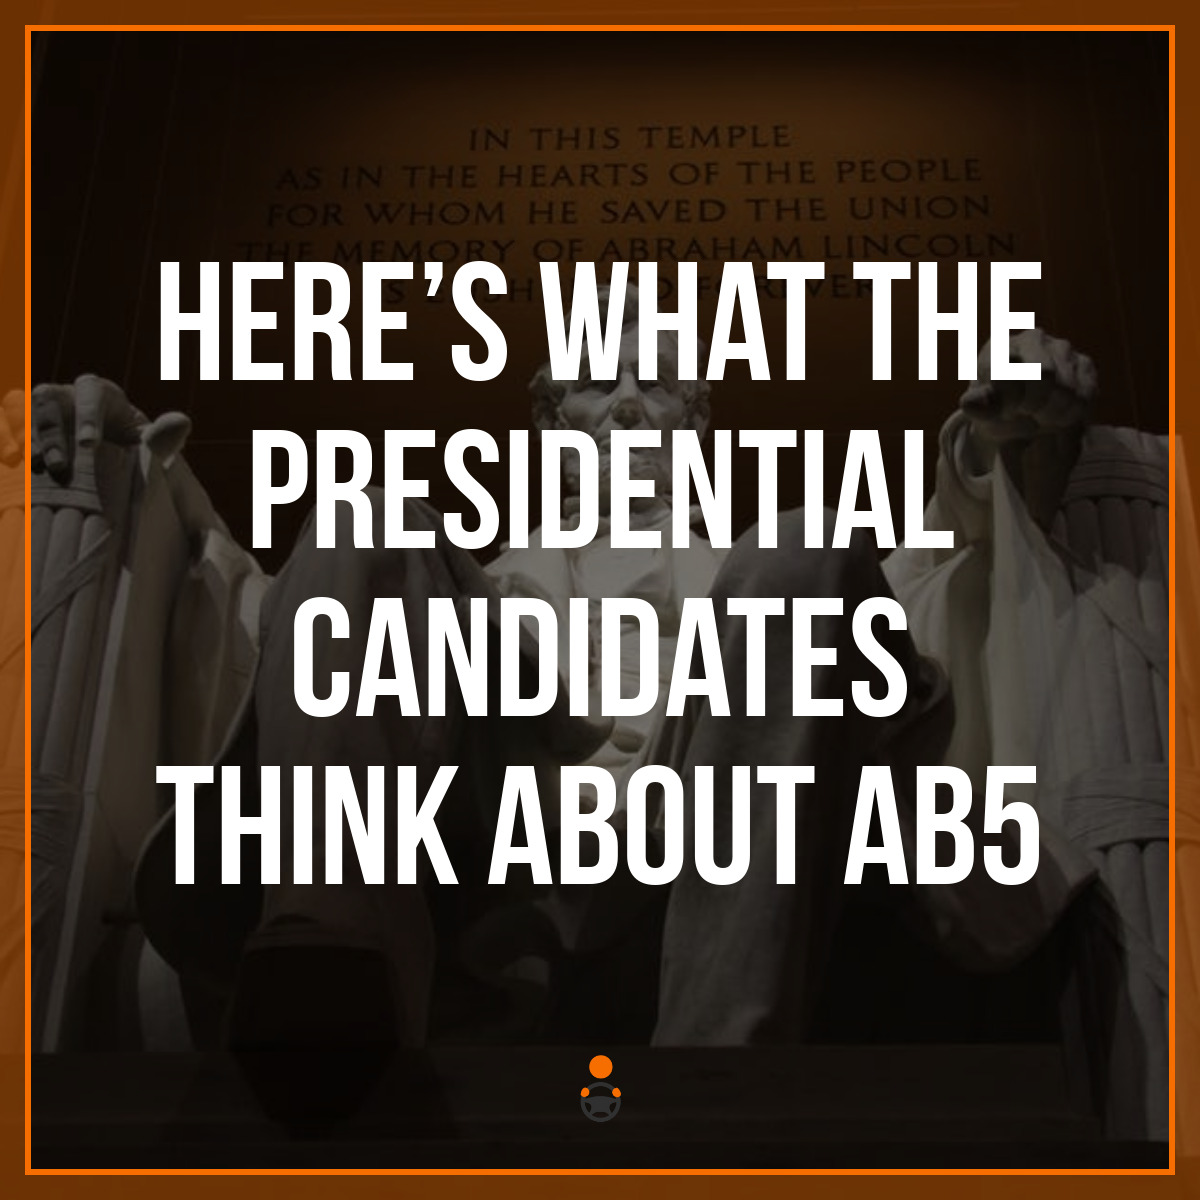 Here's What the Presidential Candidates Think About AB5